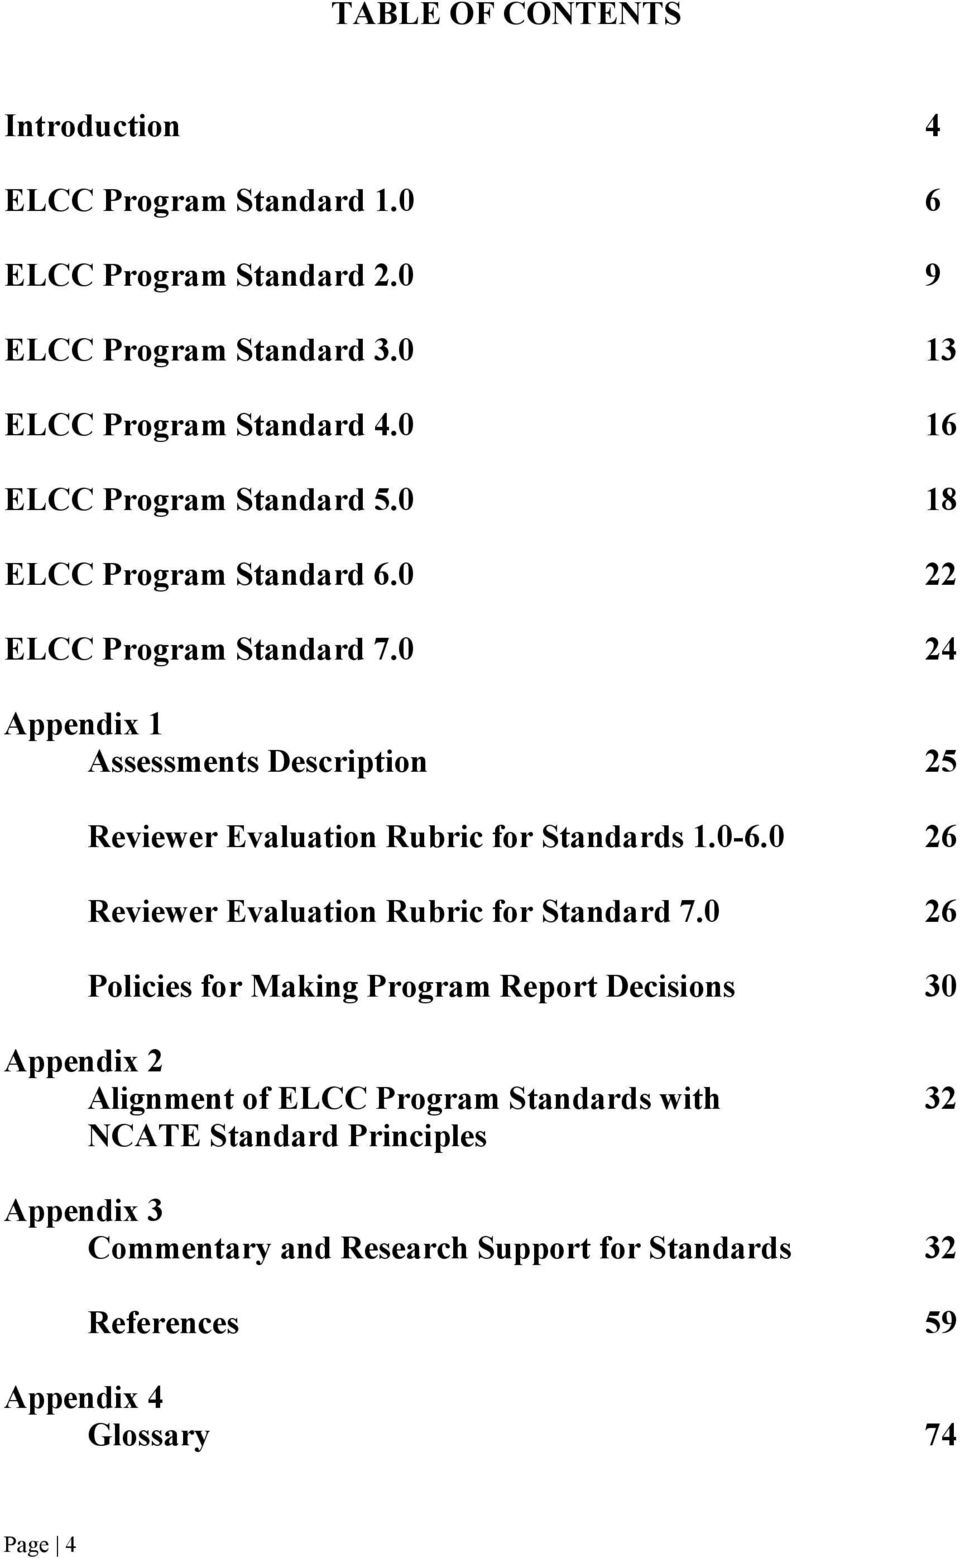 0 24 Appendix 1 Assessments Description 25 Reviewer Evaluation Rubric for Standards 1.0-6.0 26 Reviewer Evaluation Rubric for Standard 7.